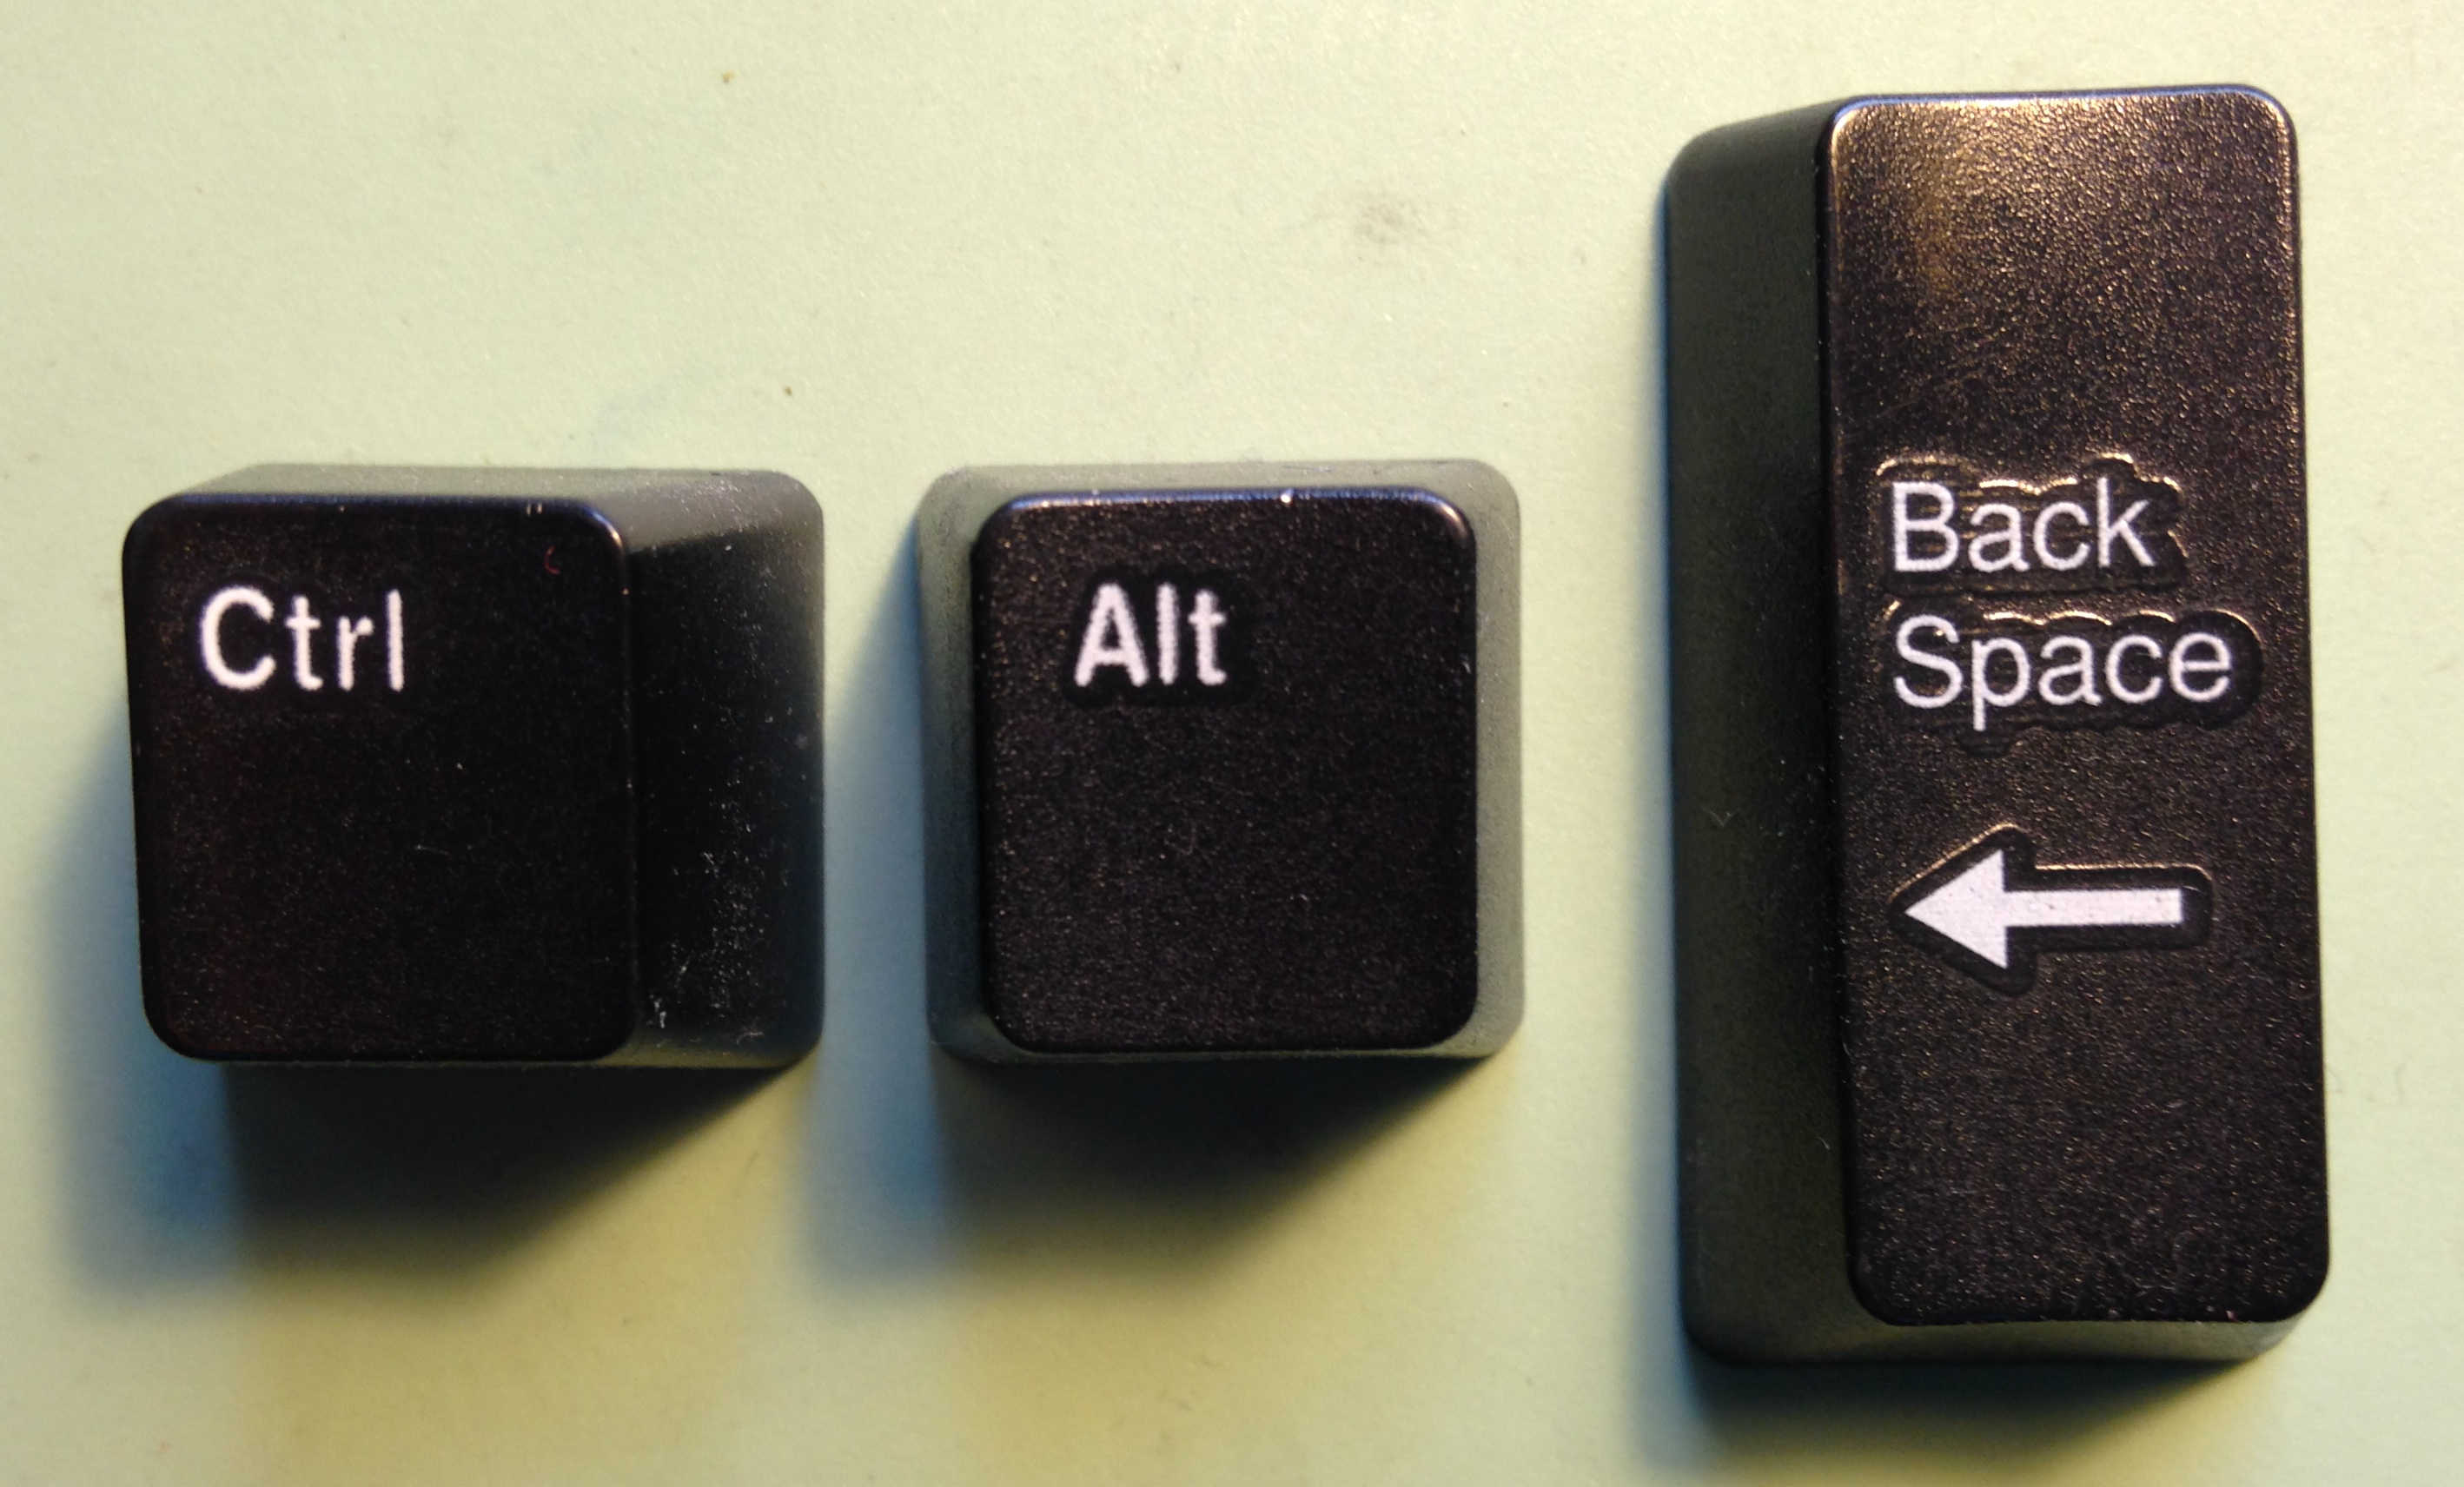 Keys arranged to show Ctrl-Alt-Backspace.